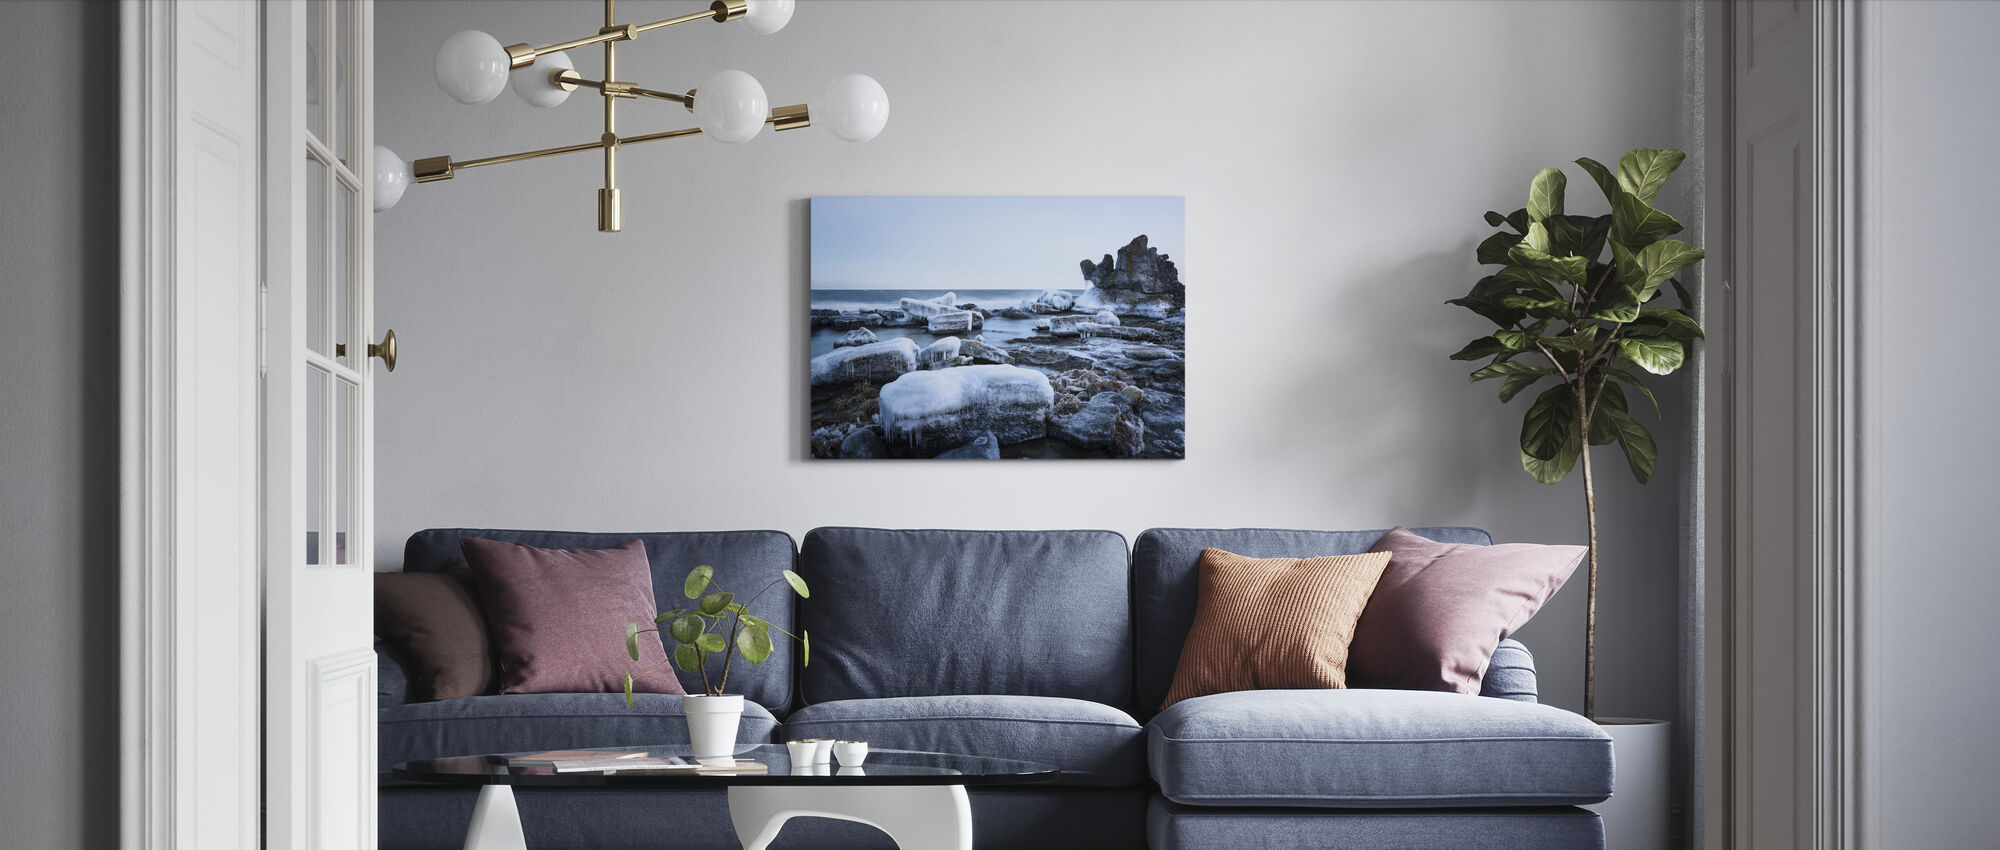 Ice Landscape, Gotland - Canvas print - Living Room